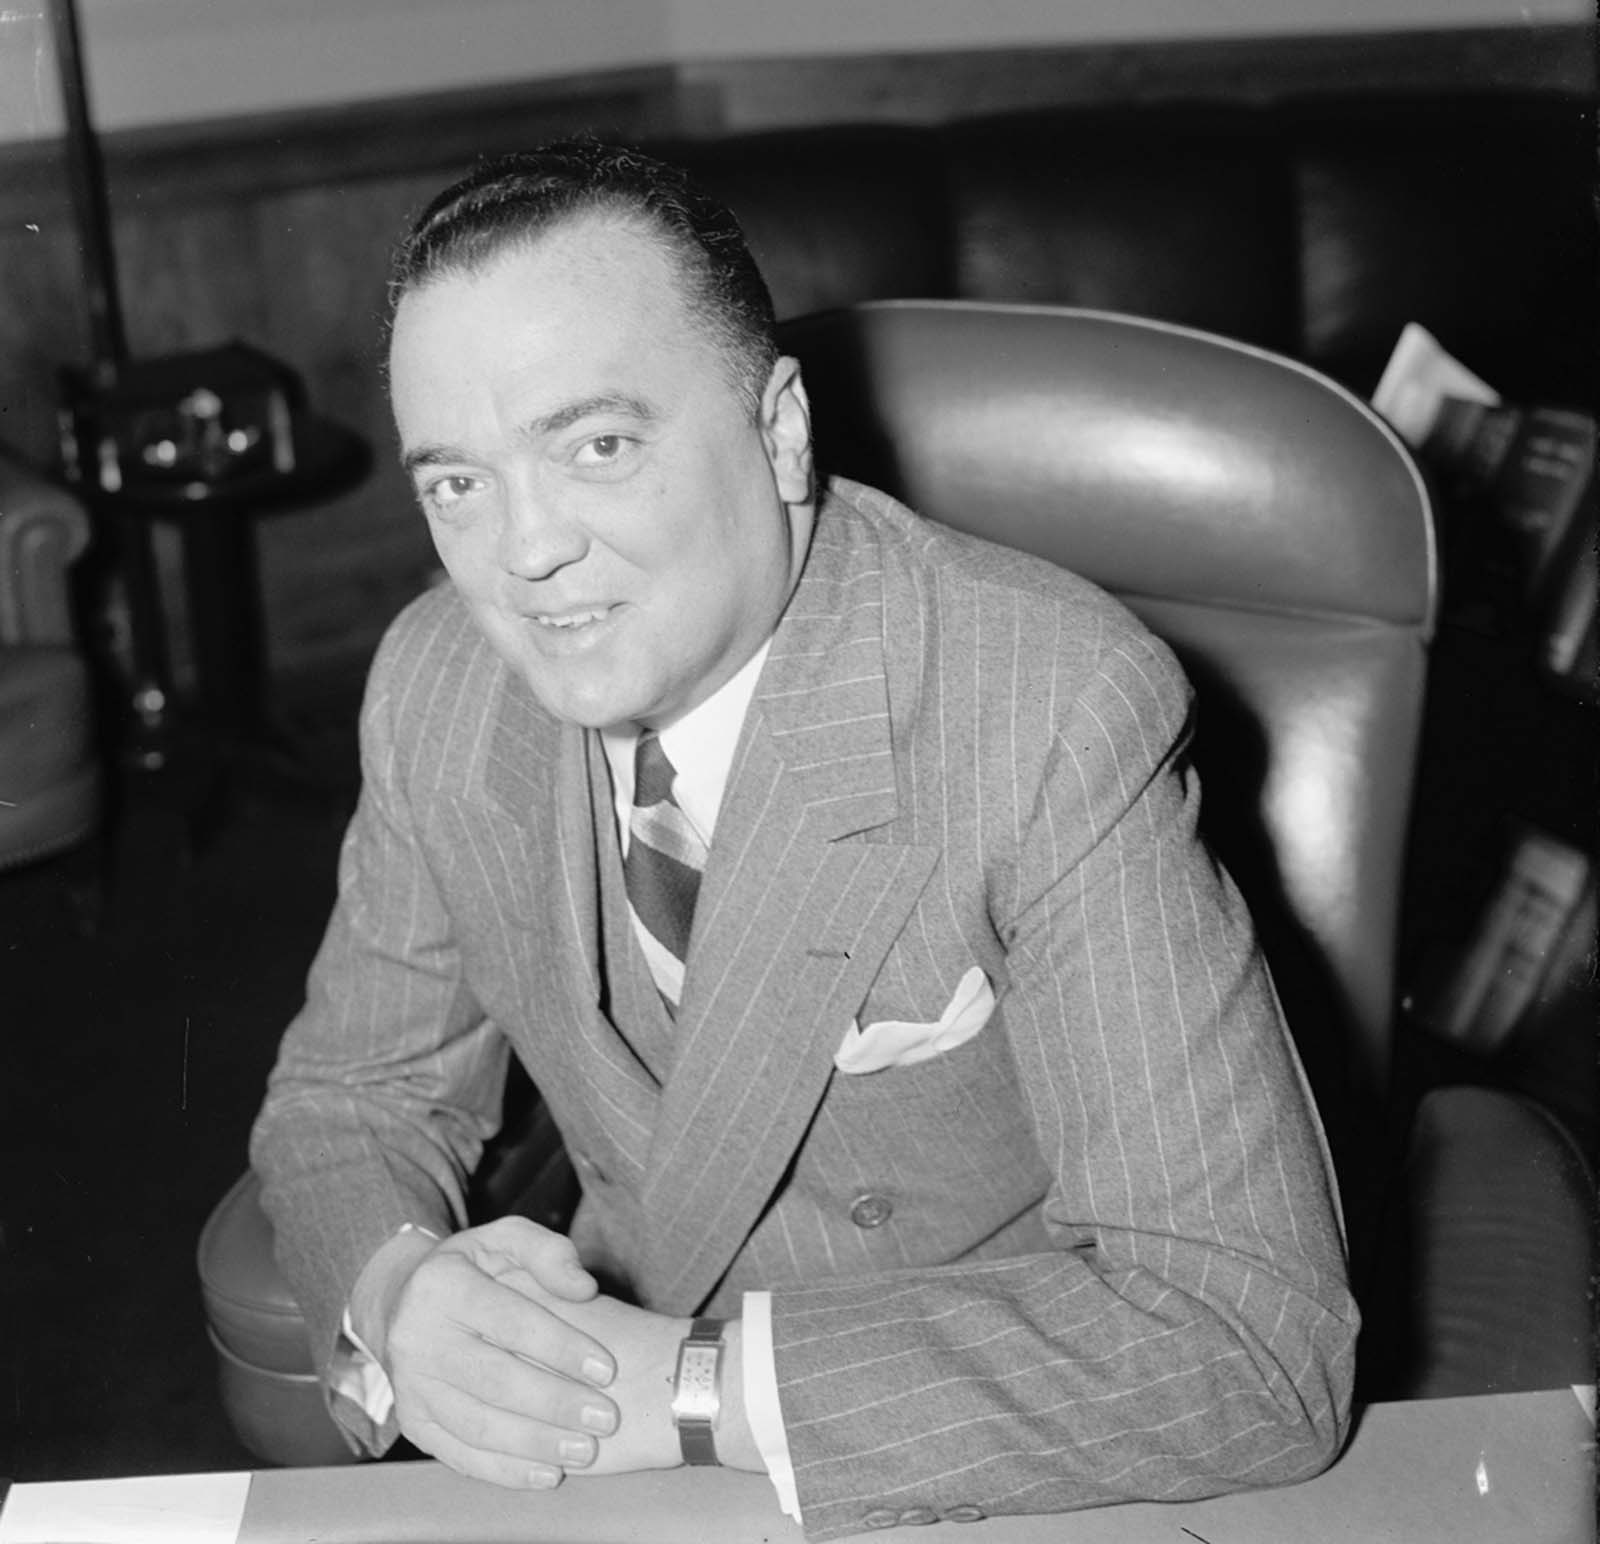 J. Edgar Hoover, boss of FBI, had files on everyone. If you even visited Washington, D.C., he knew that you had flipped off that teacher in third grade. It gave him... leverage.